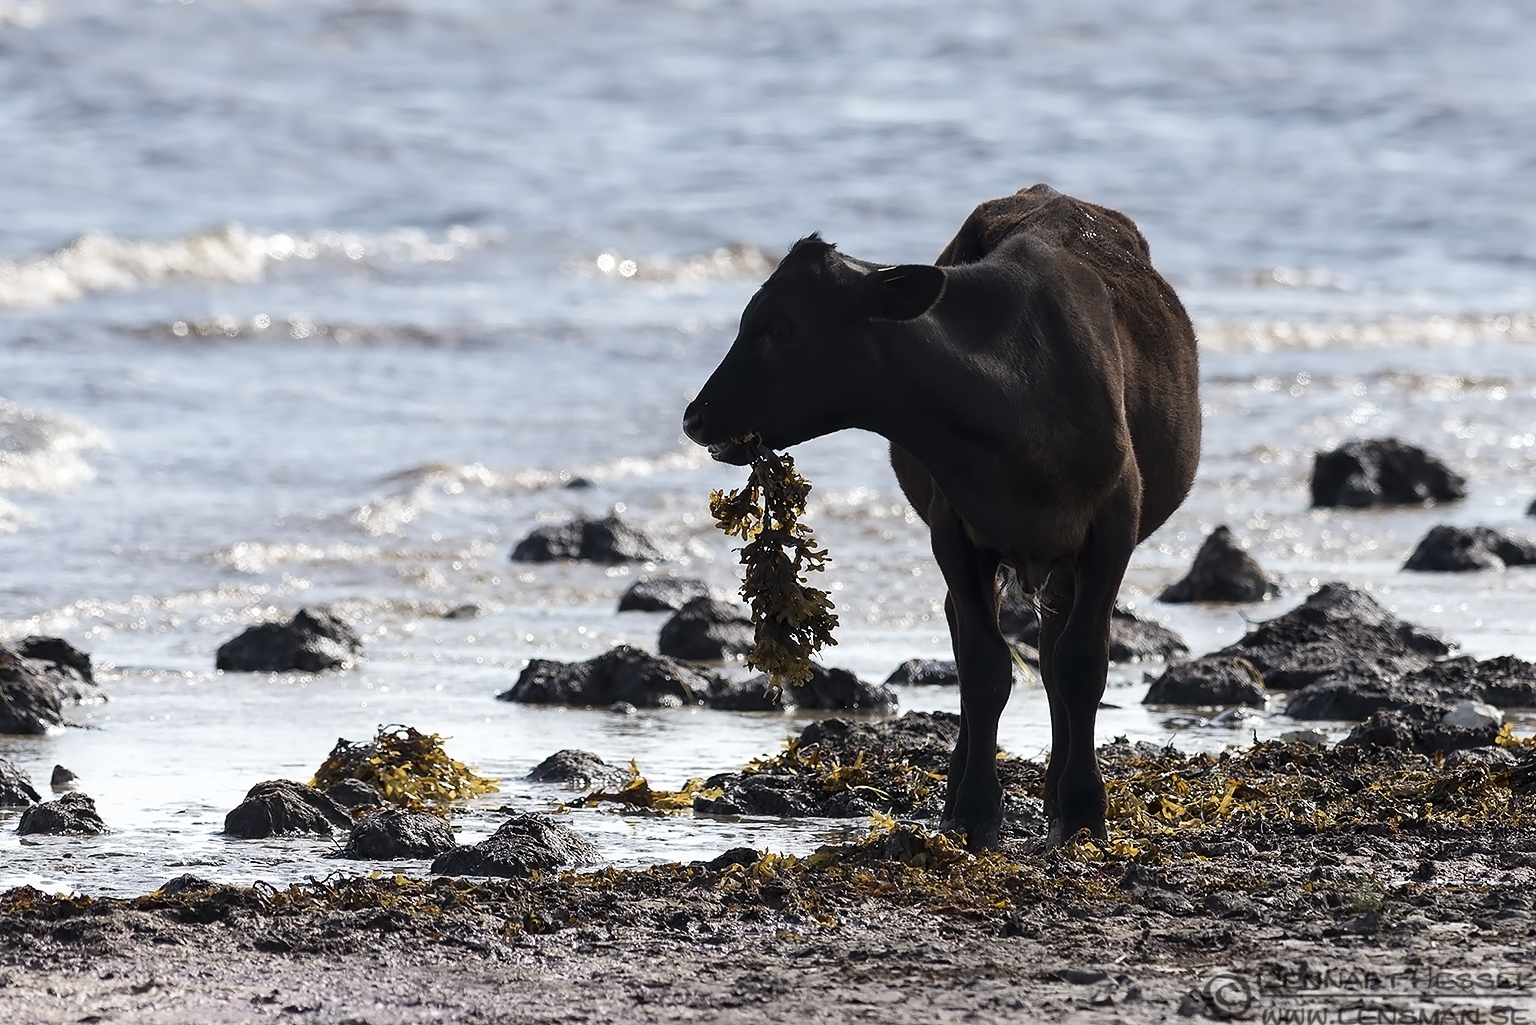 Calf with a special diet Öland 2012